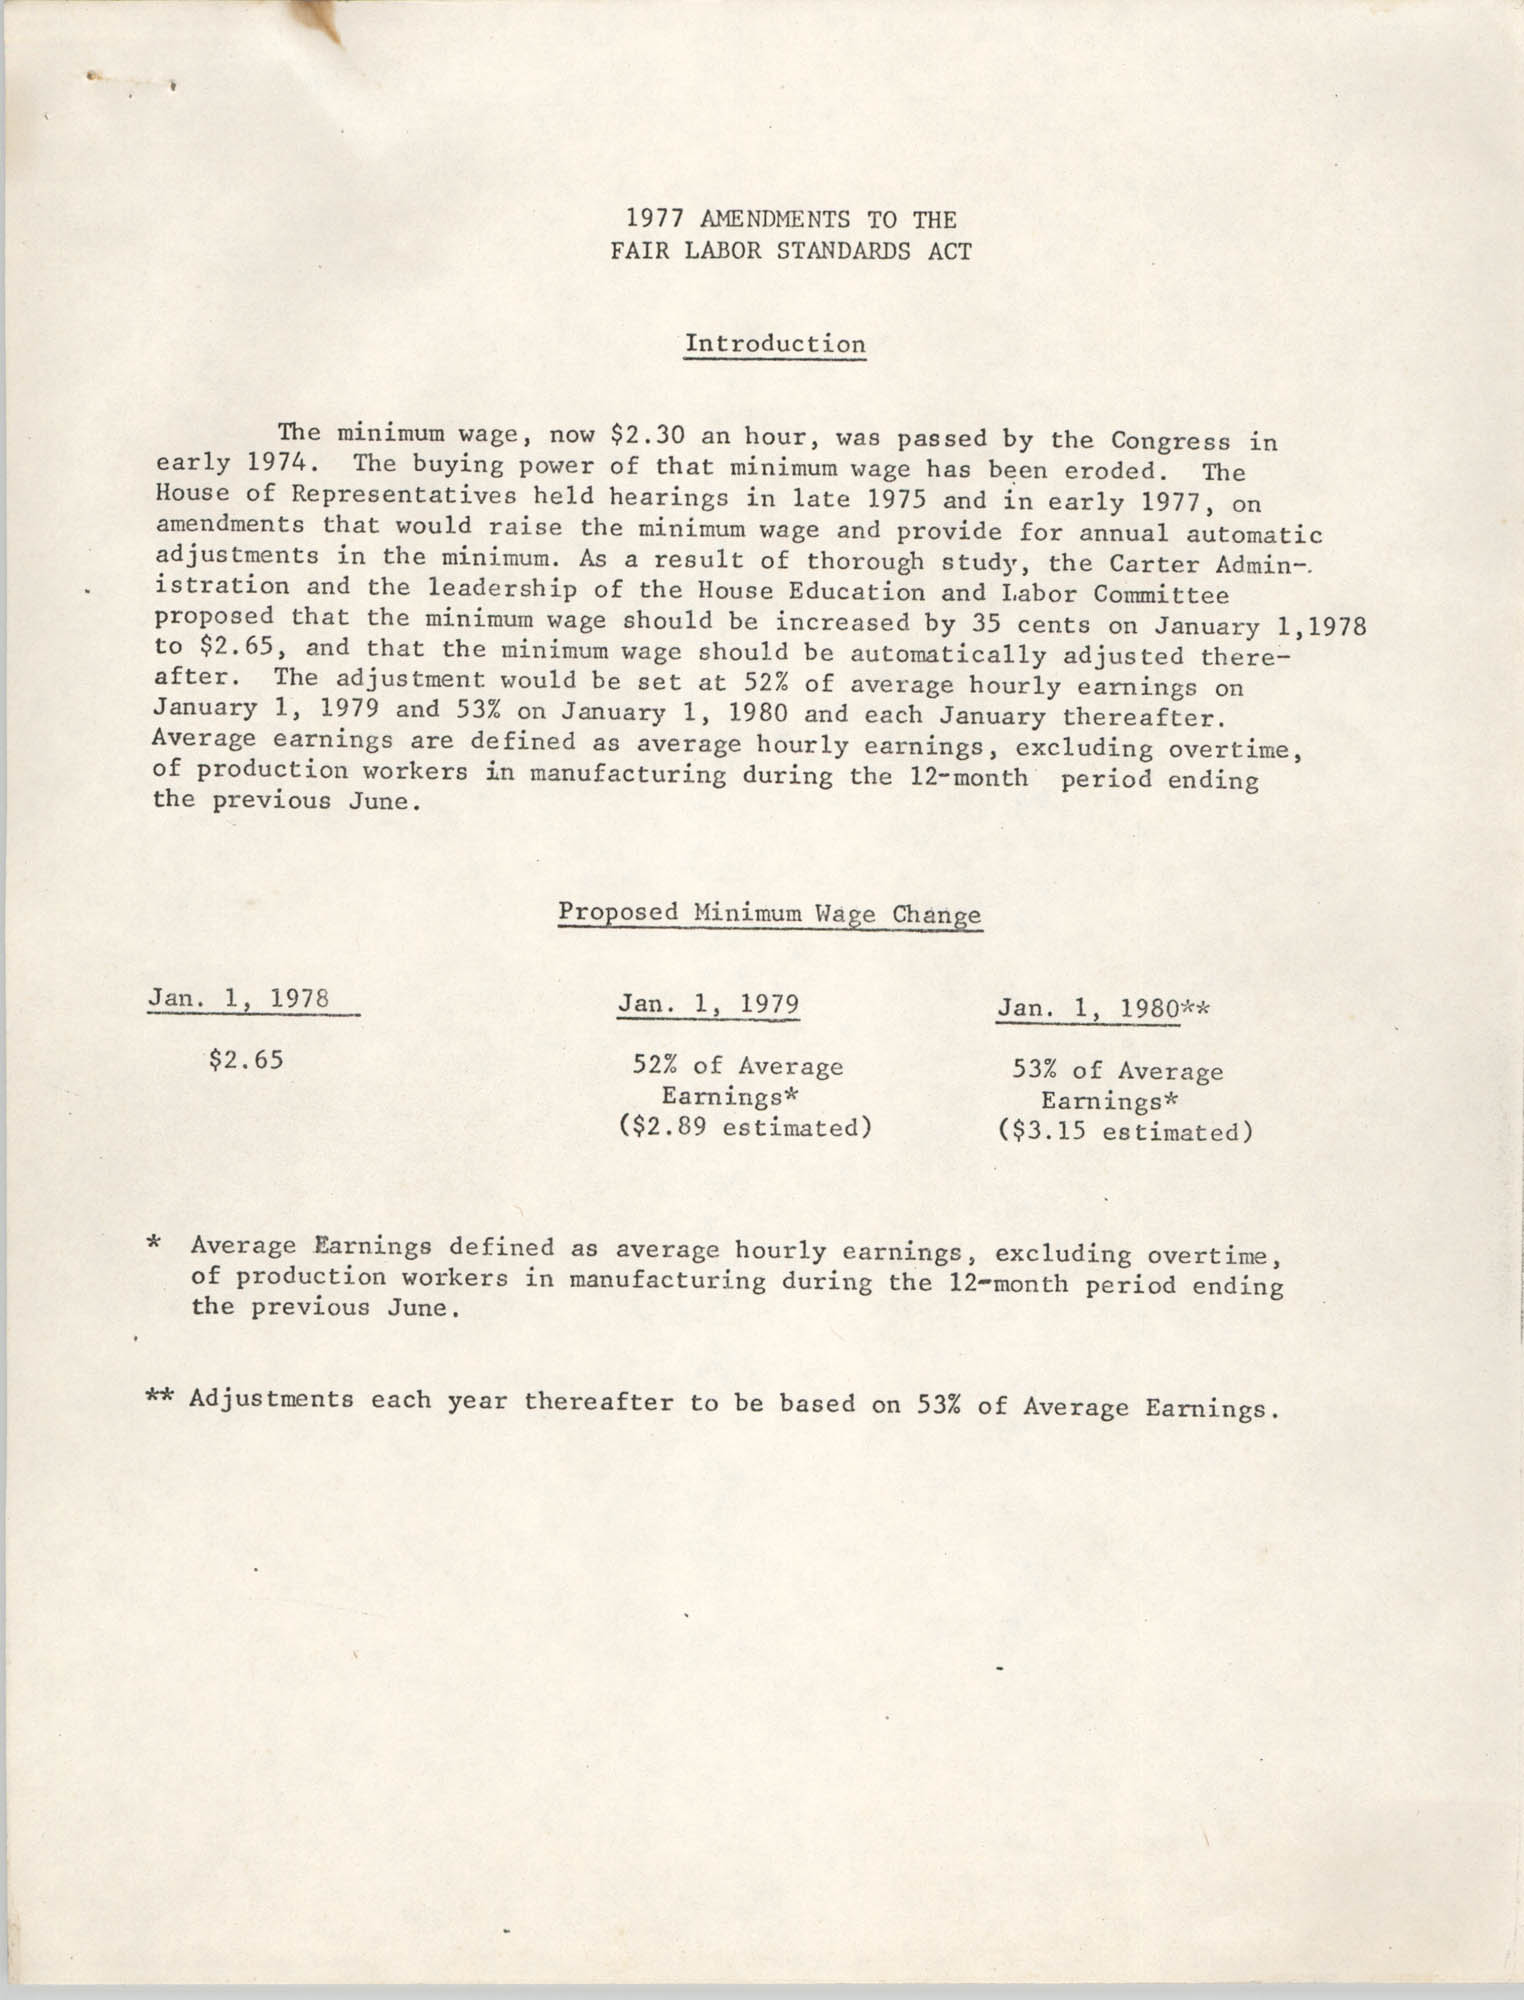 1977 Amendments to the Fair Labor Standards Act, Page 1